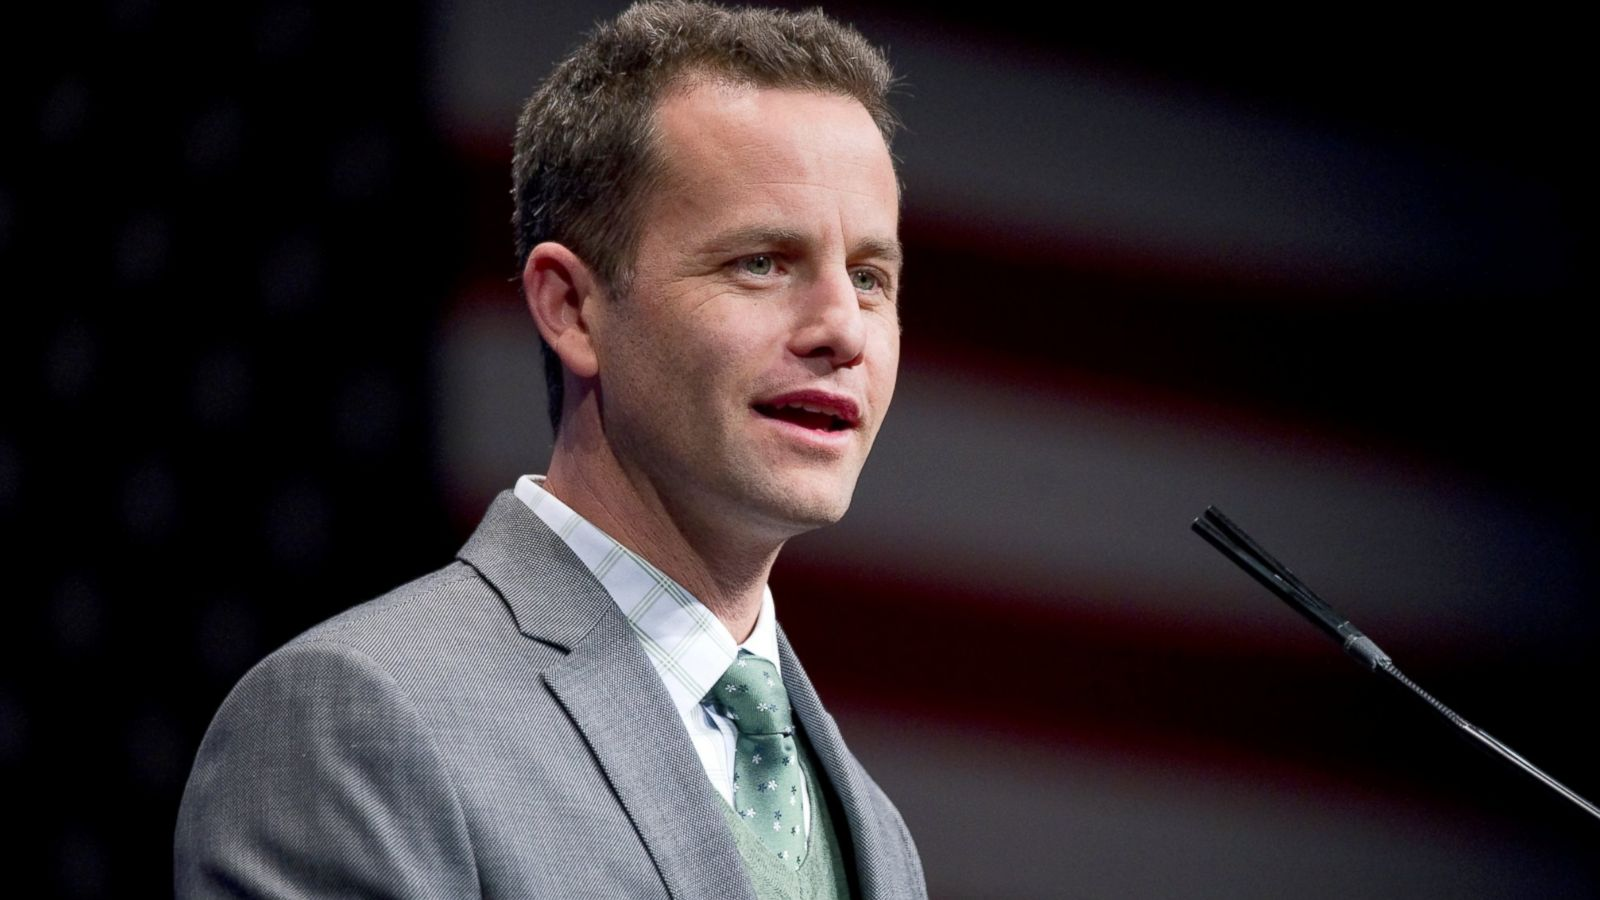 Why Kirk Cameron Was Working at a Chick-fil-A Drive-Thru - ABC News